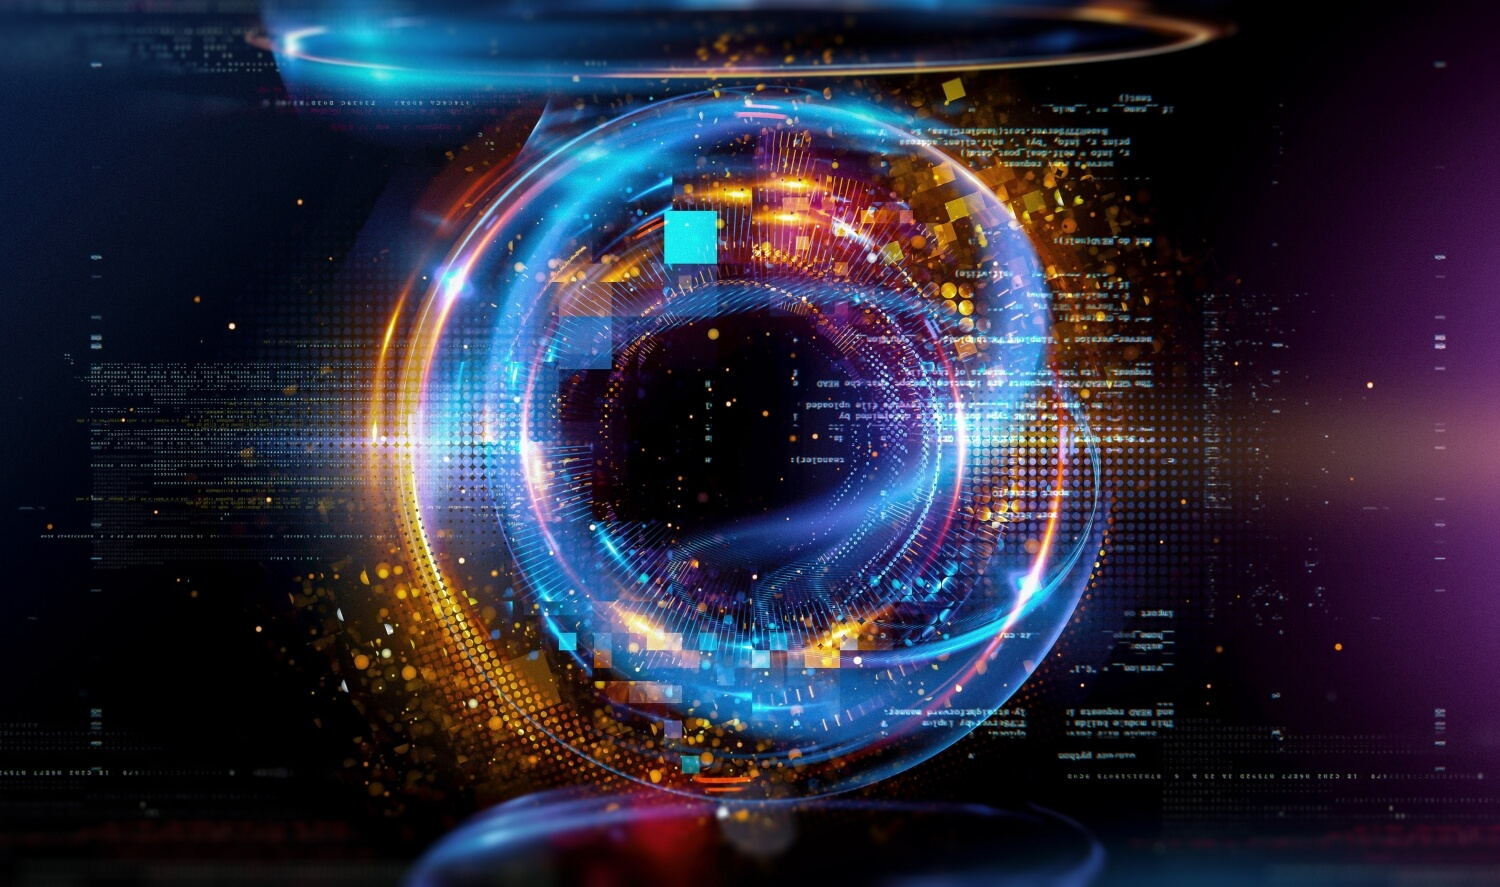 A Quantum Internet would eliminate security concerns by nature